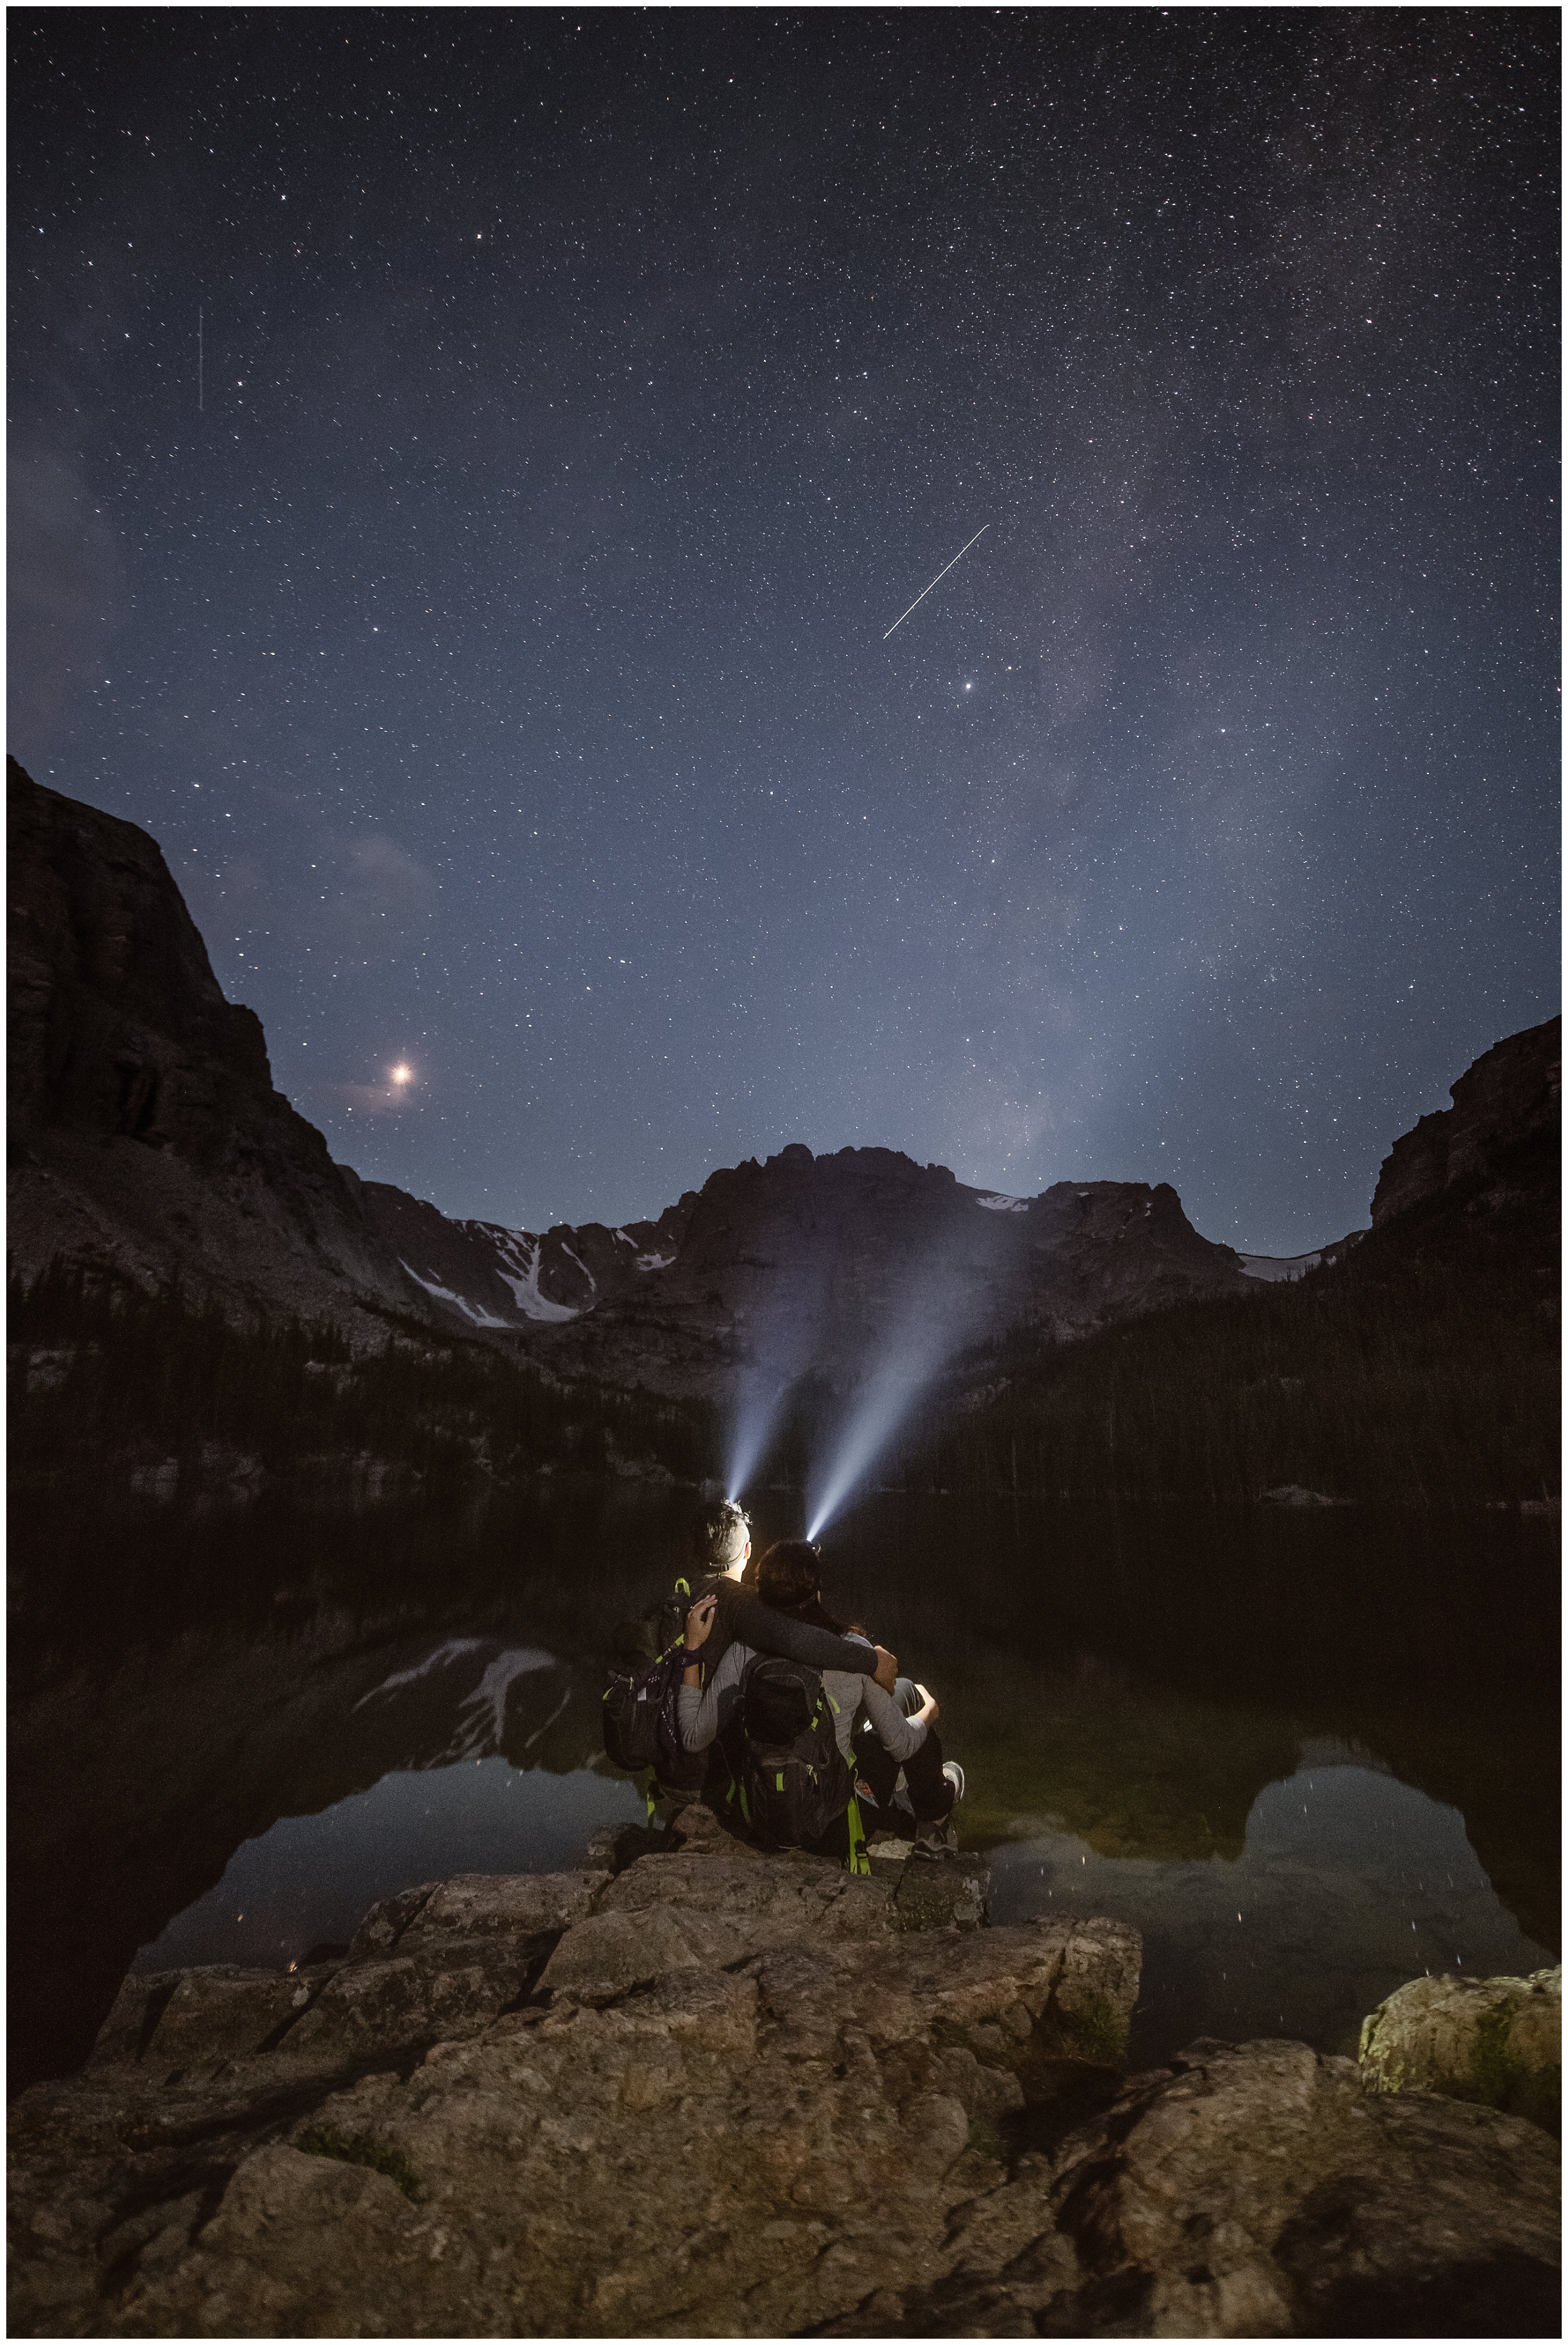 A bride and groom sit by a lake in the dark, the stars and their headlamps the only lights shining down on the scenery in front of them. Hiking up to your elopement ceremony location is one of the unique eloping ideas several couples want to include in their elopement wedding.